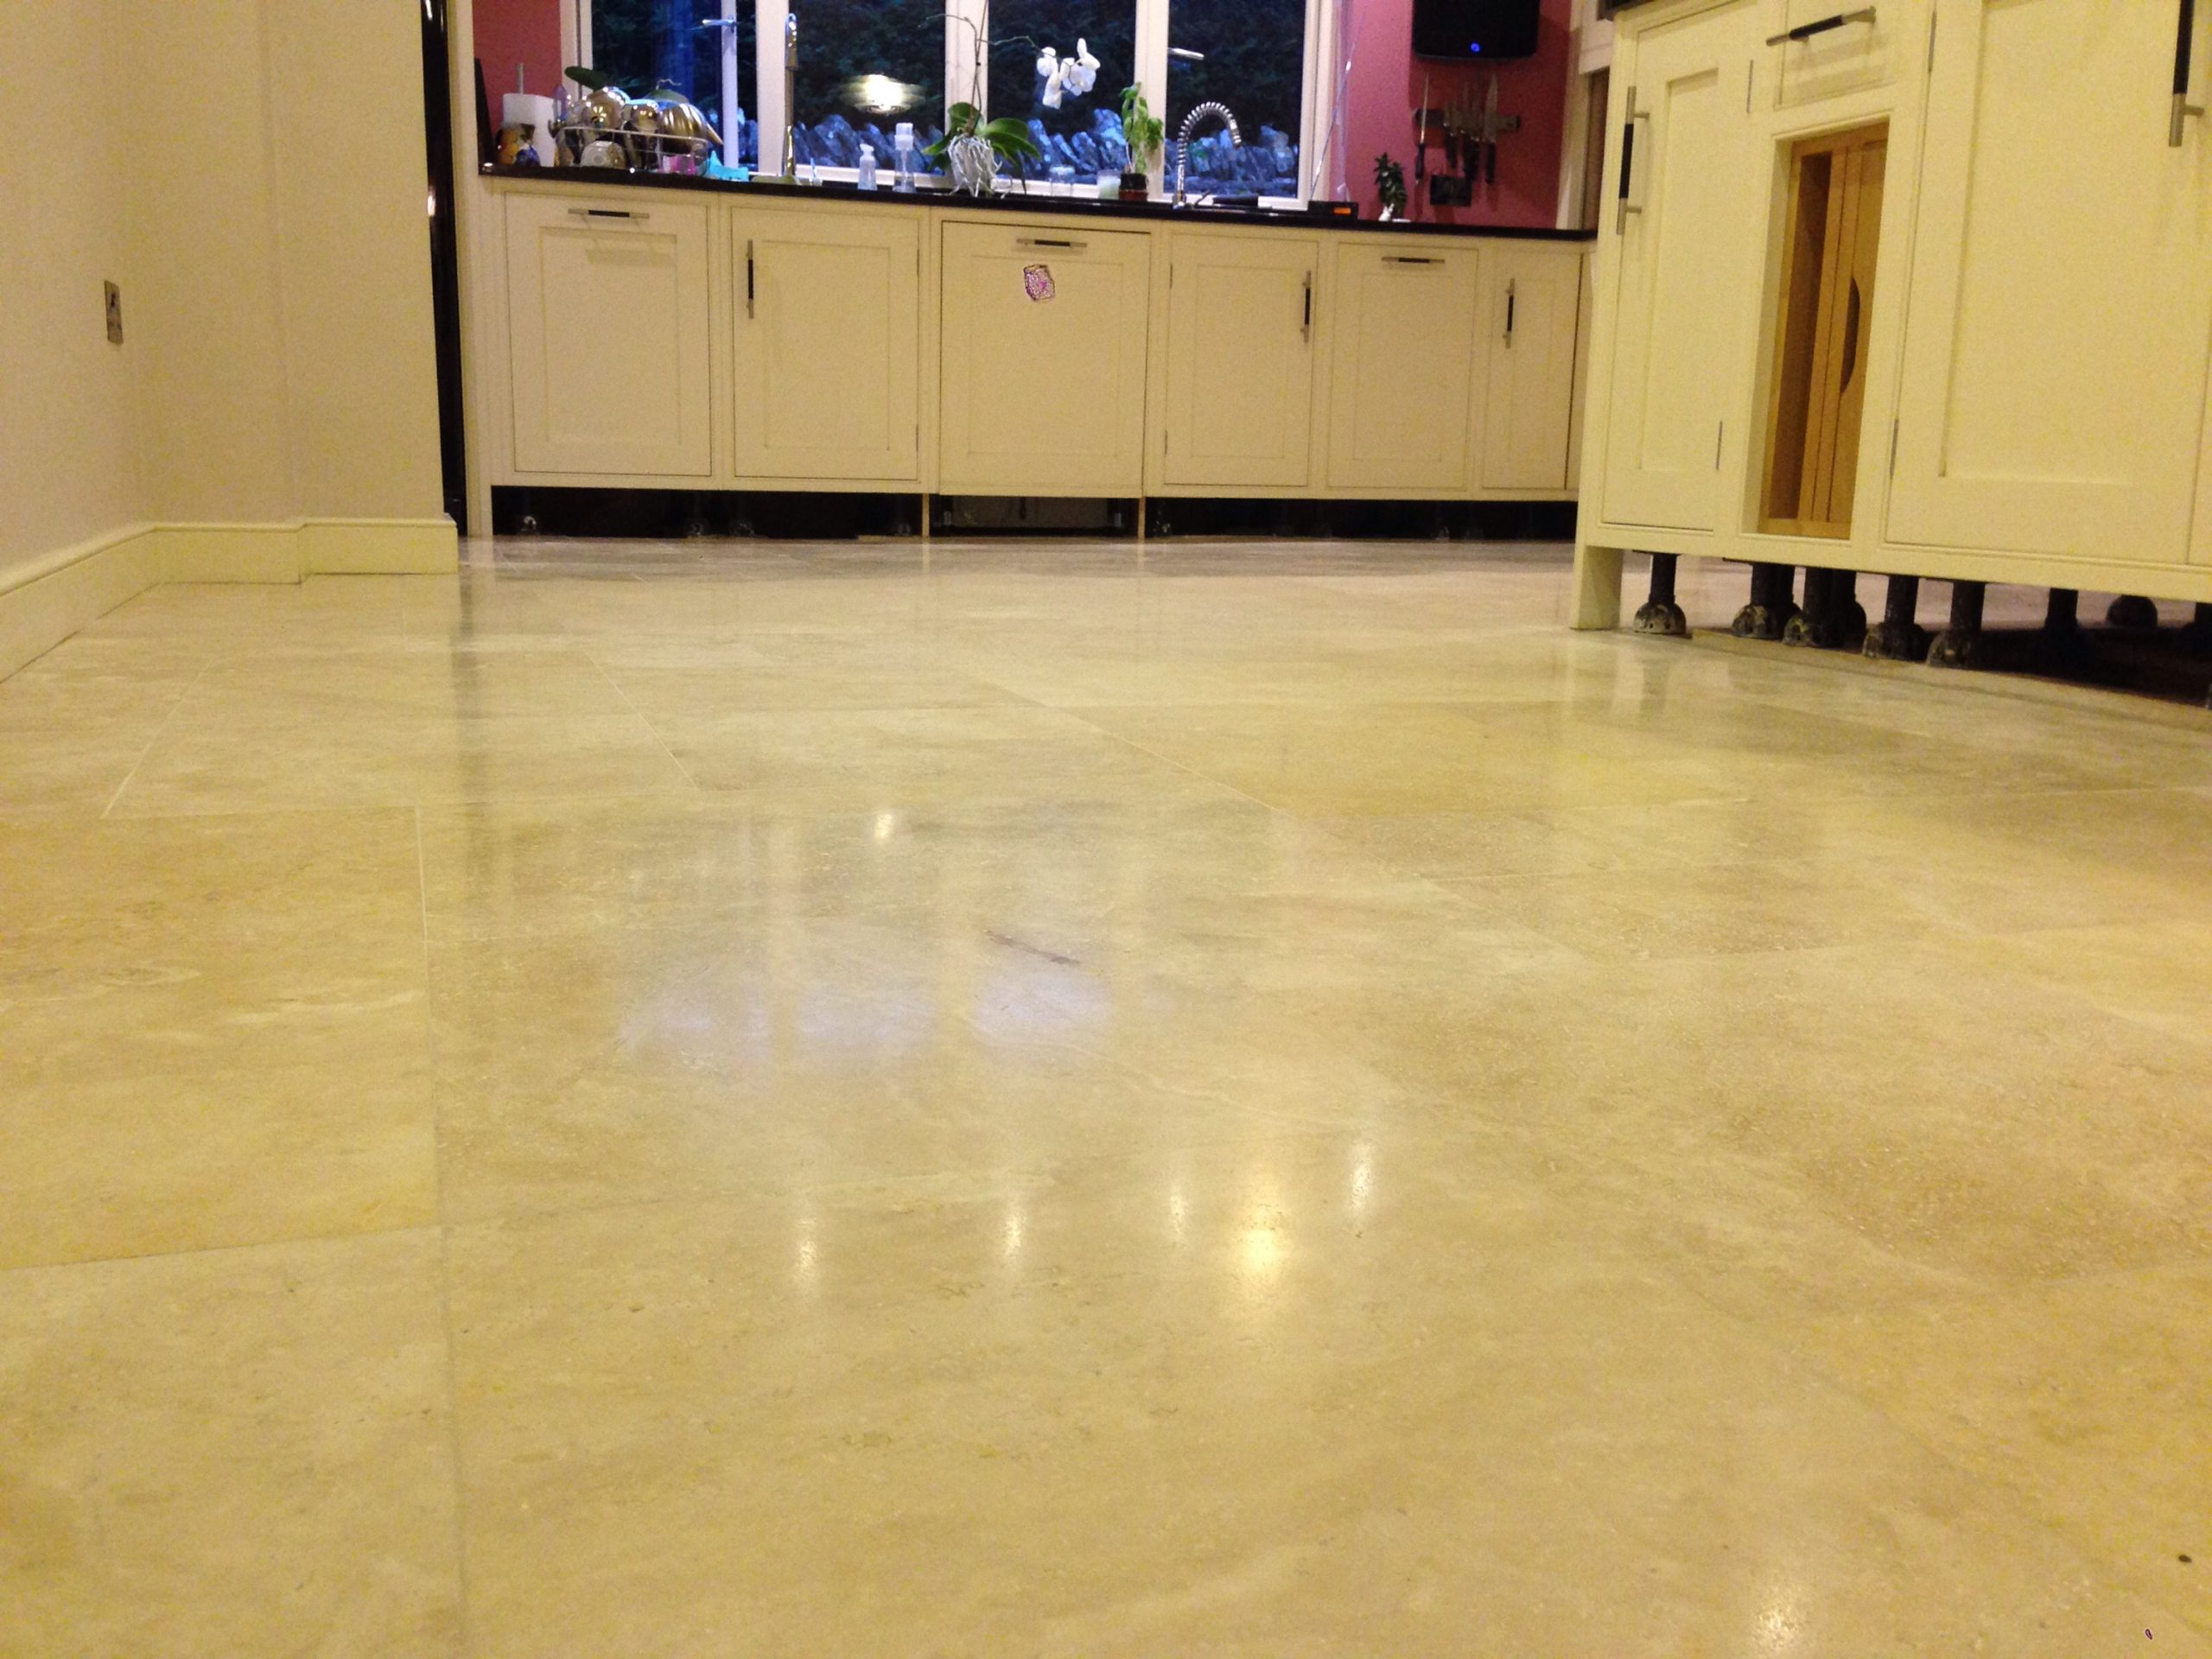 Travertine archives cotswold stone floor cleaners now the polished travertine floor is totally level repolished sealed making it like one complete piece of stone a monolith dailygadgetfo Images